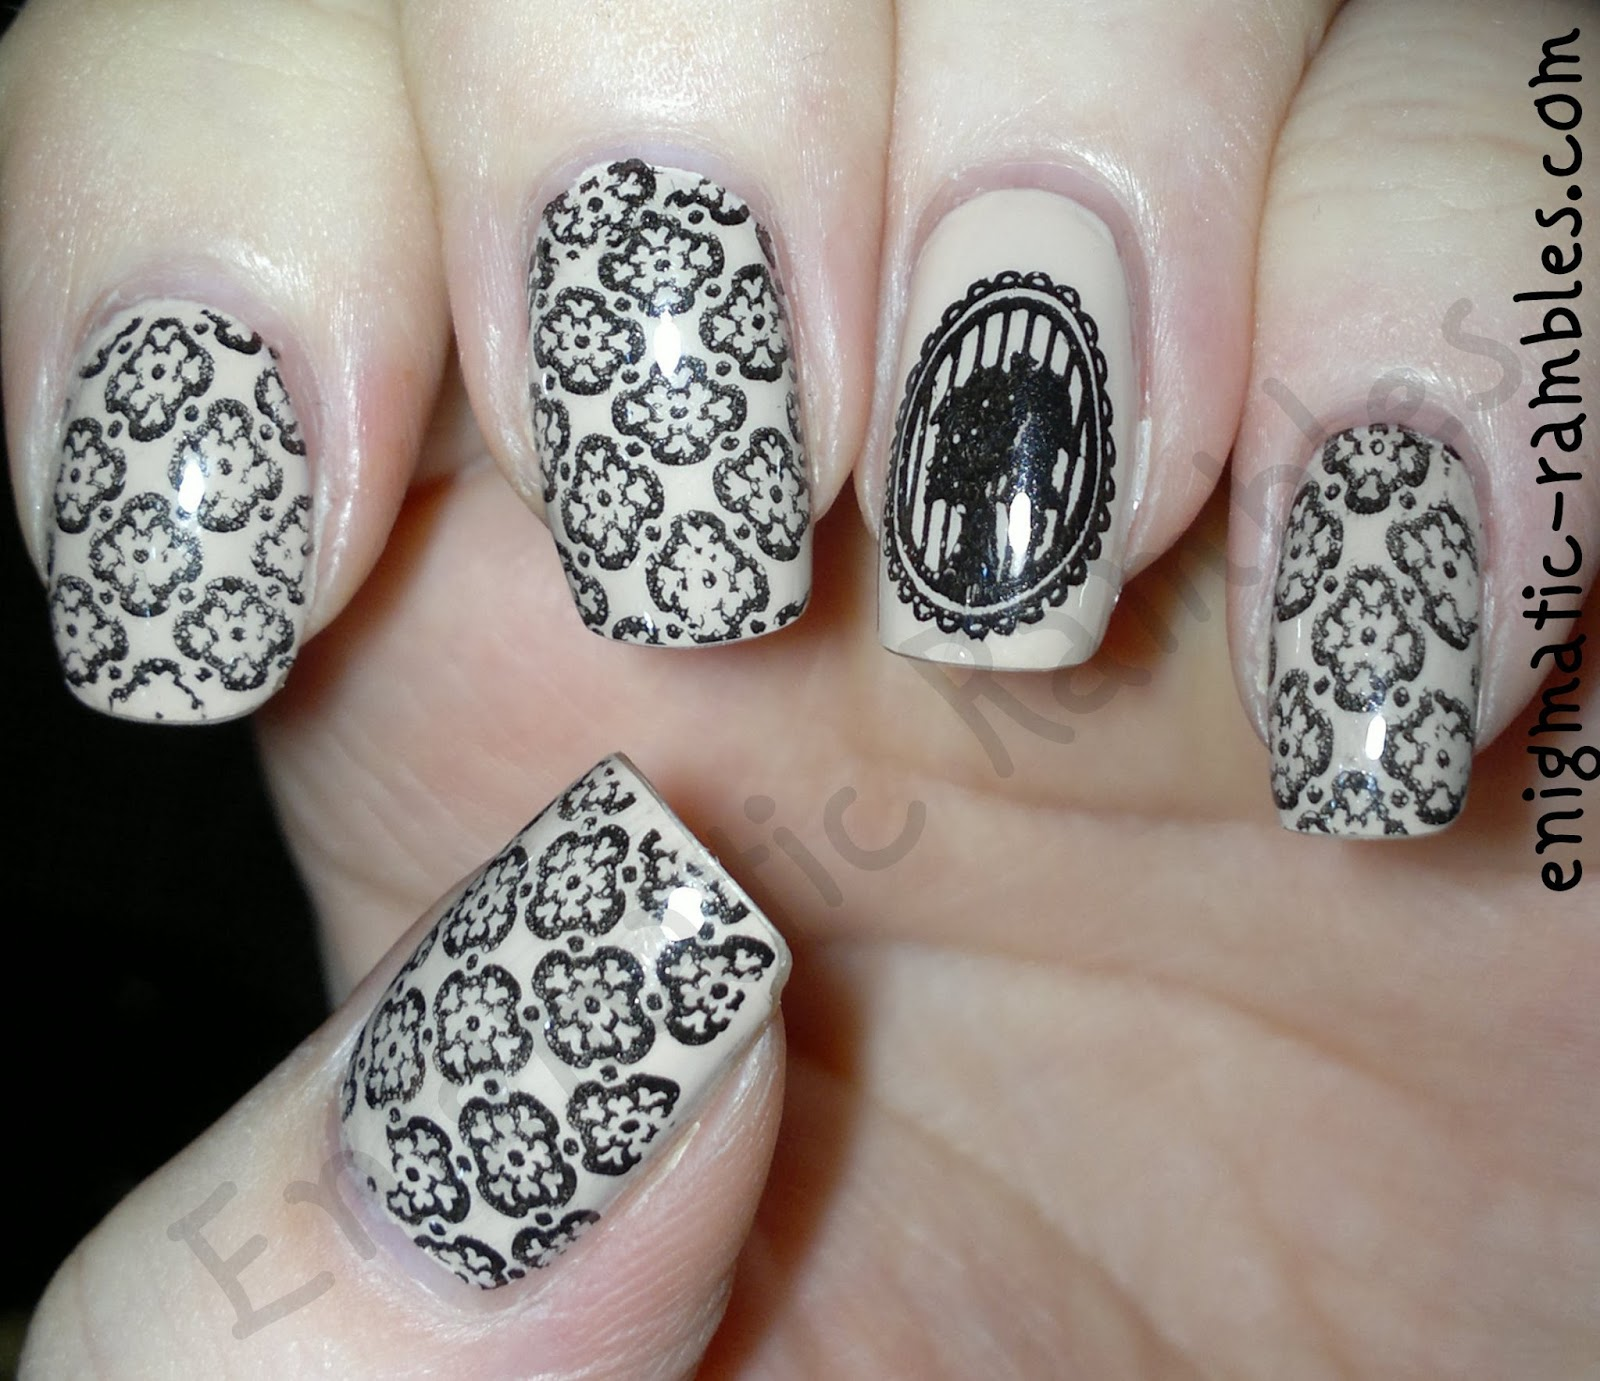 cameo-stamping-stamped-stamp-nails-nail-art-leighton-denny-opaque-elegence-bundle-monster-404-407-bm404-bm407